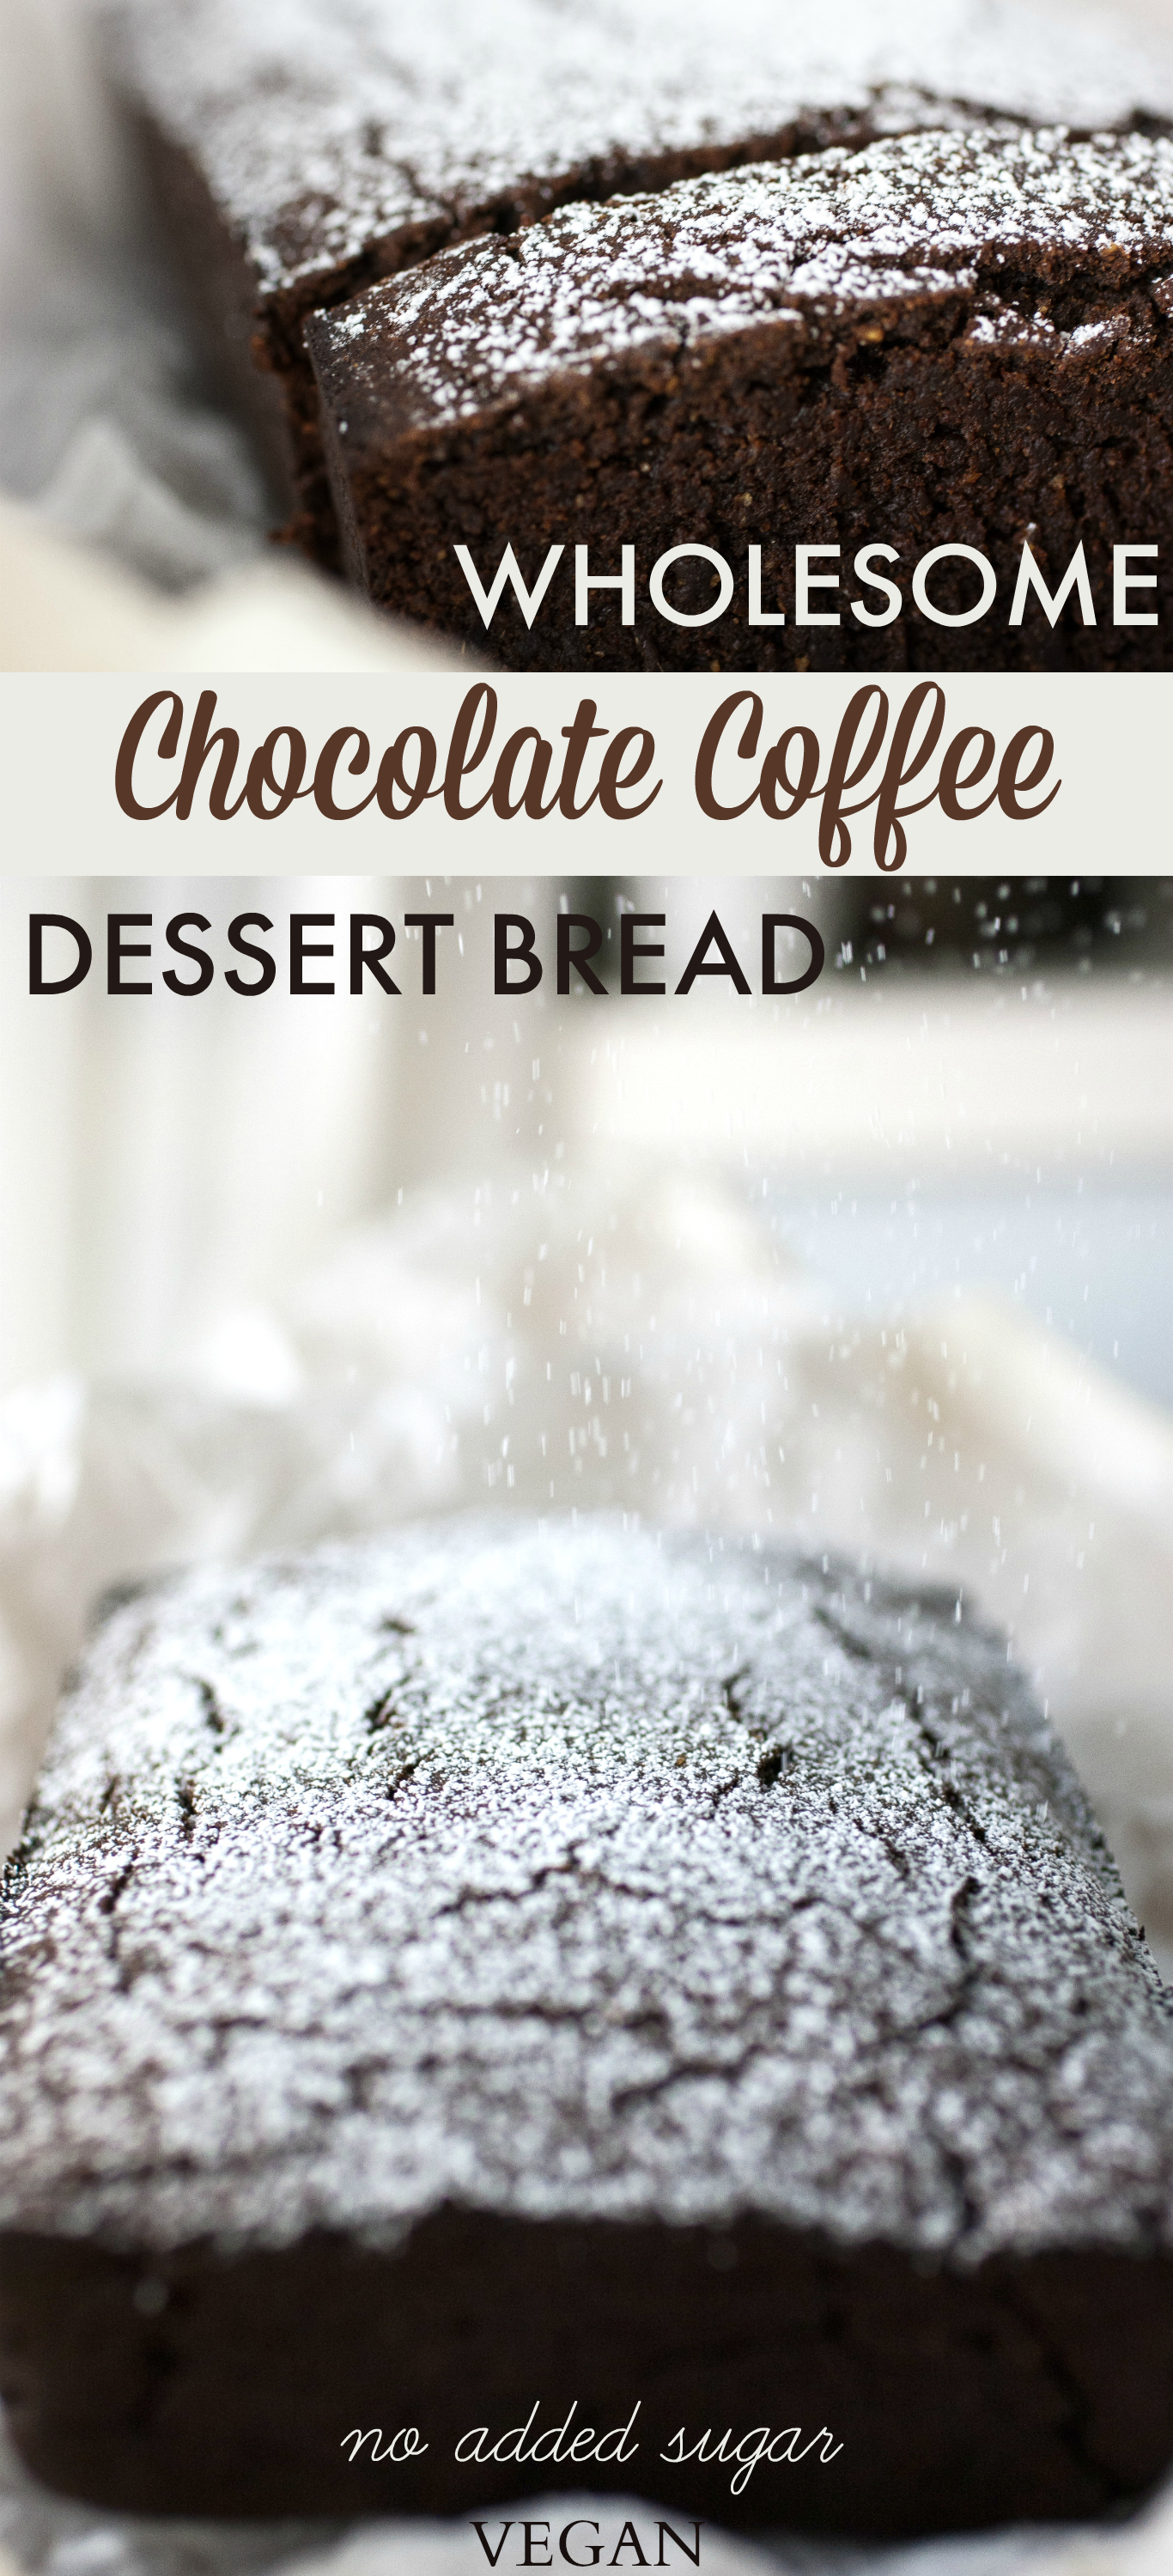 Produce On Parade - Wholesome Chocolate Coffee Dessert Bread